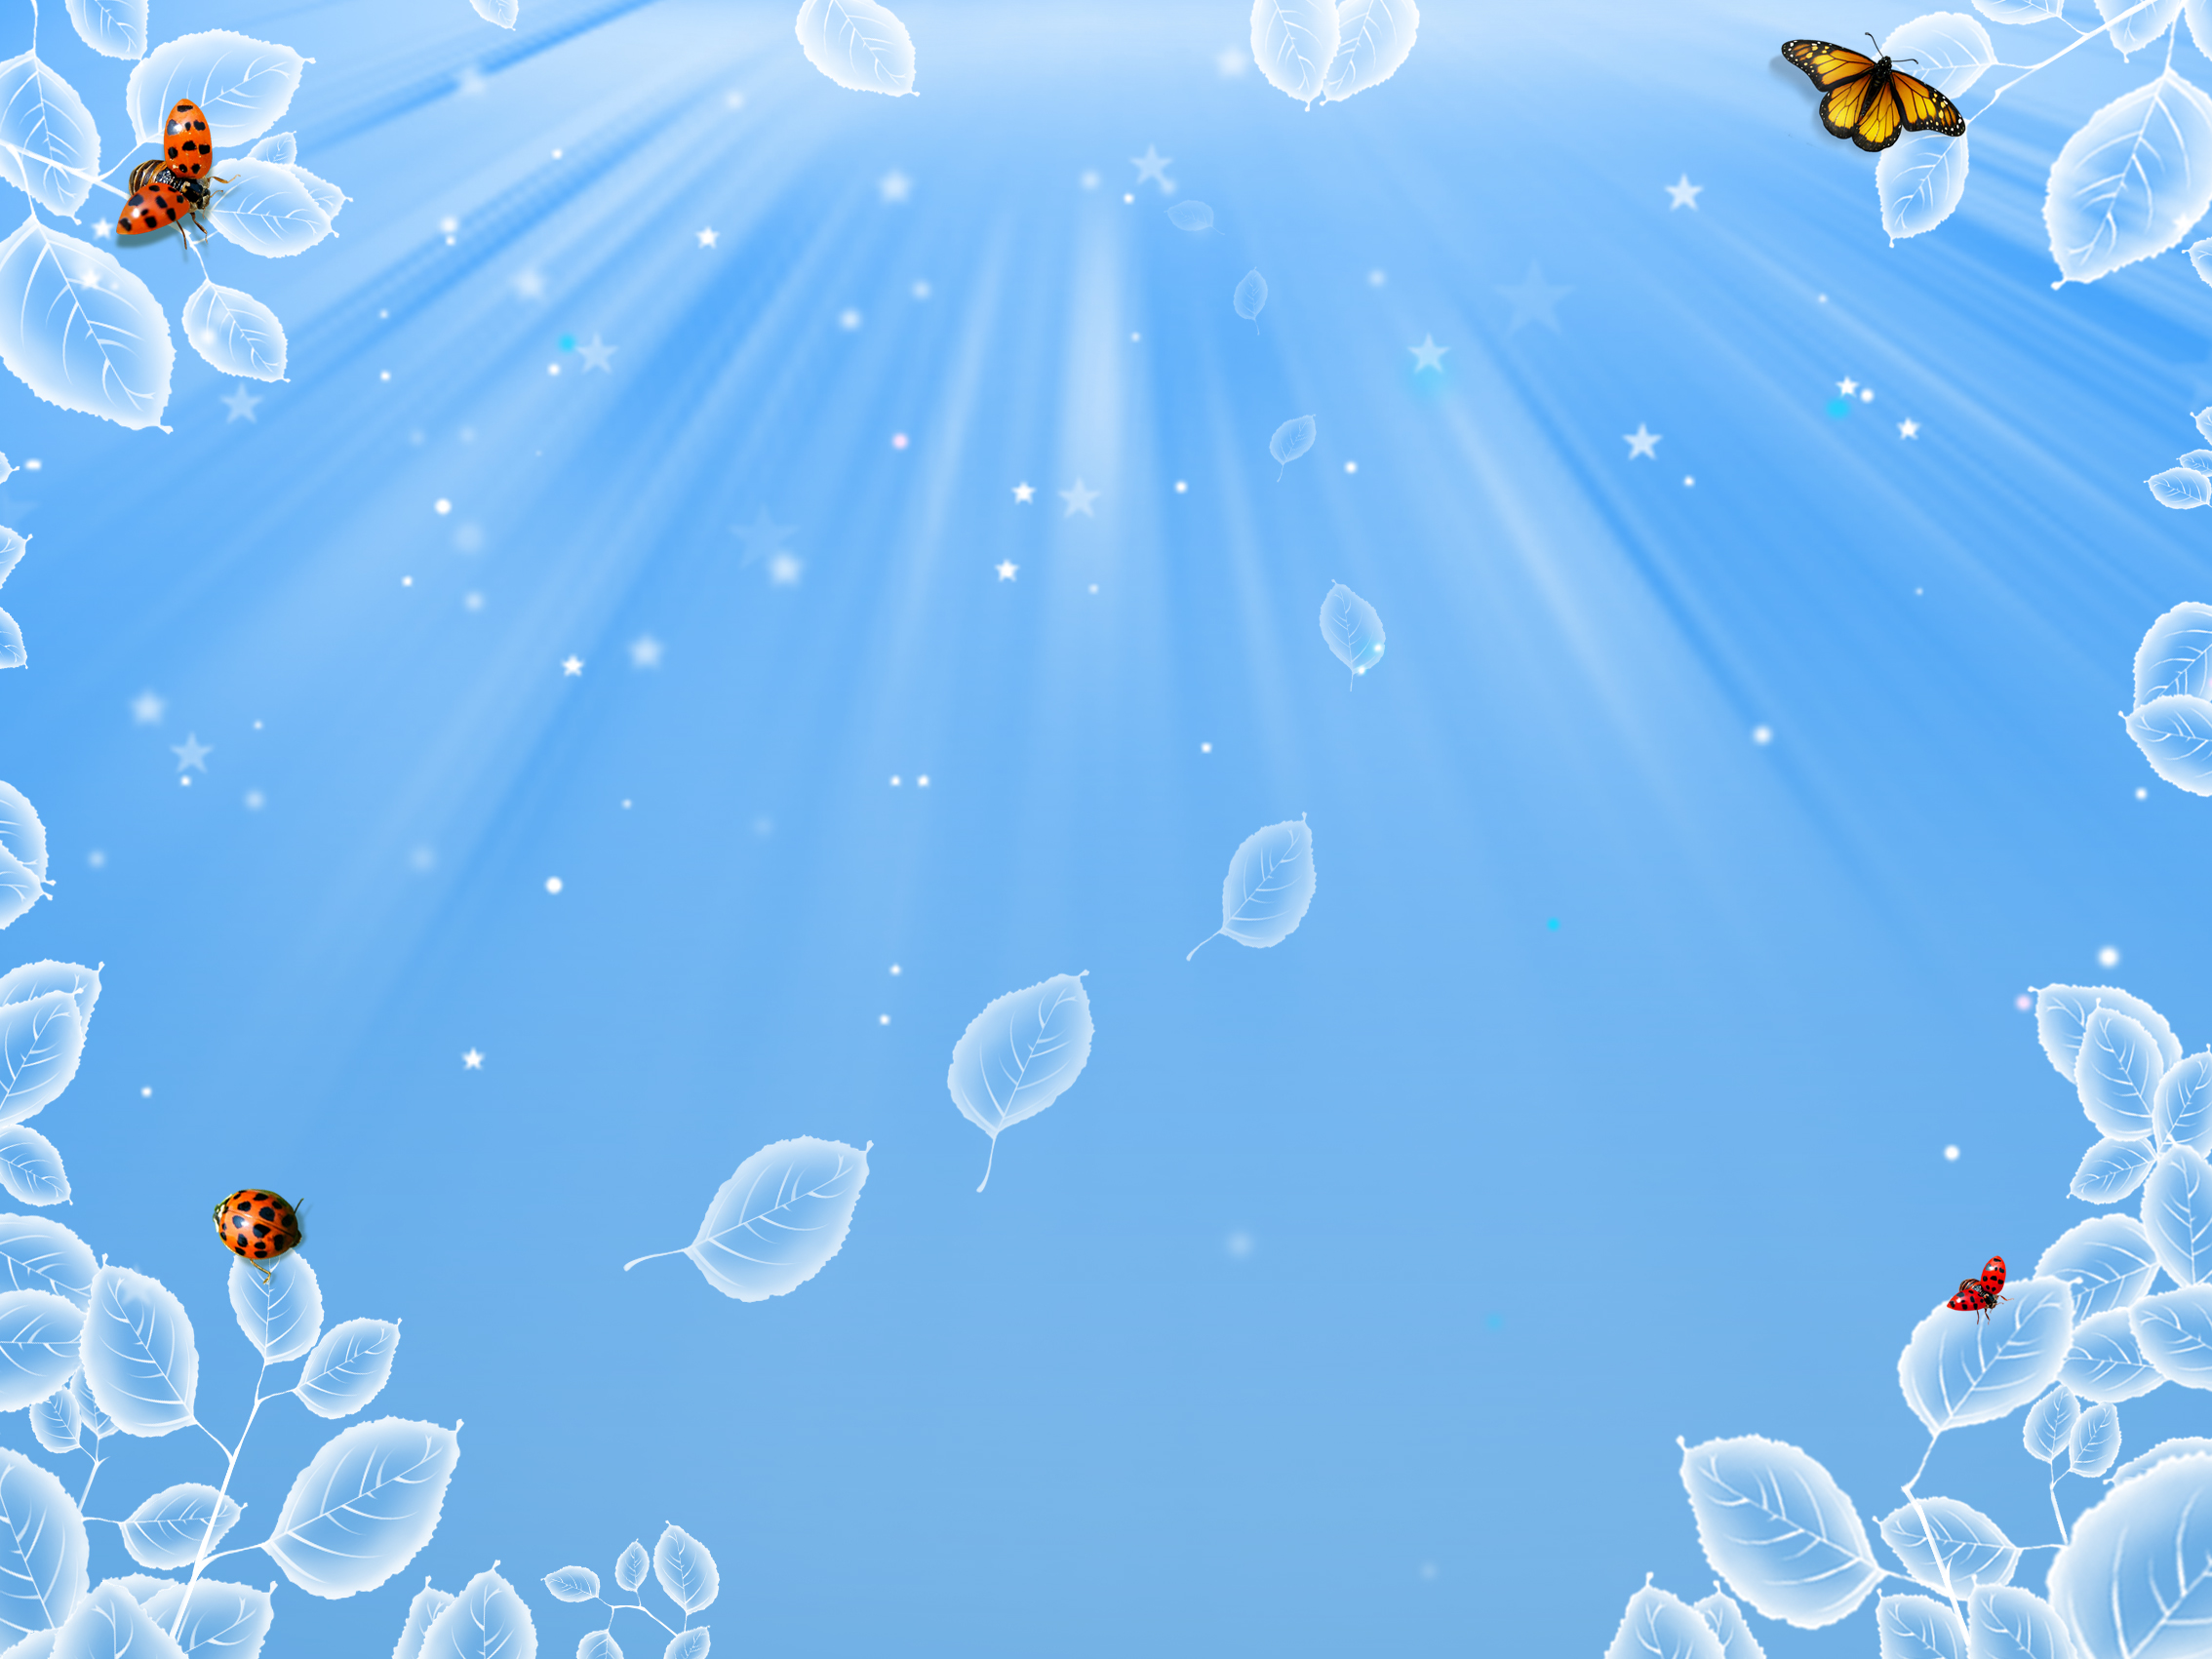 Free Images Transparent Background PSD